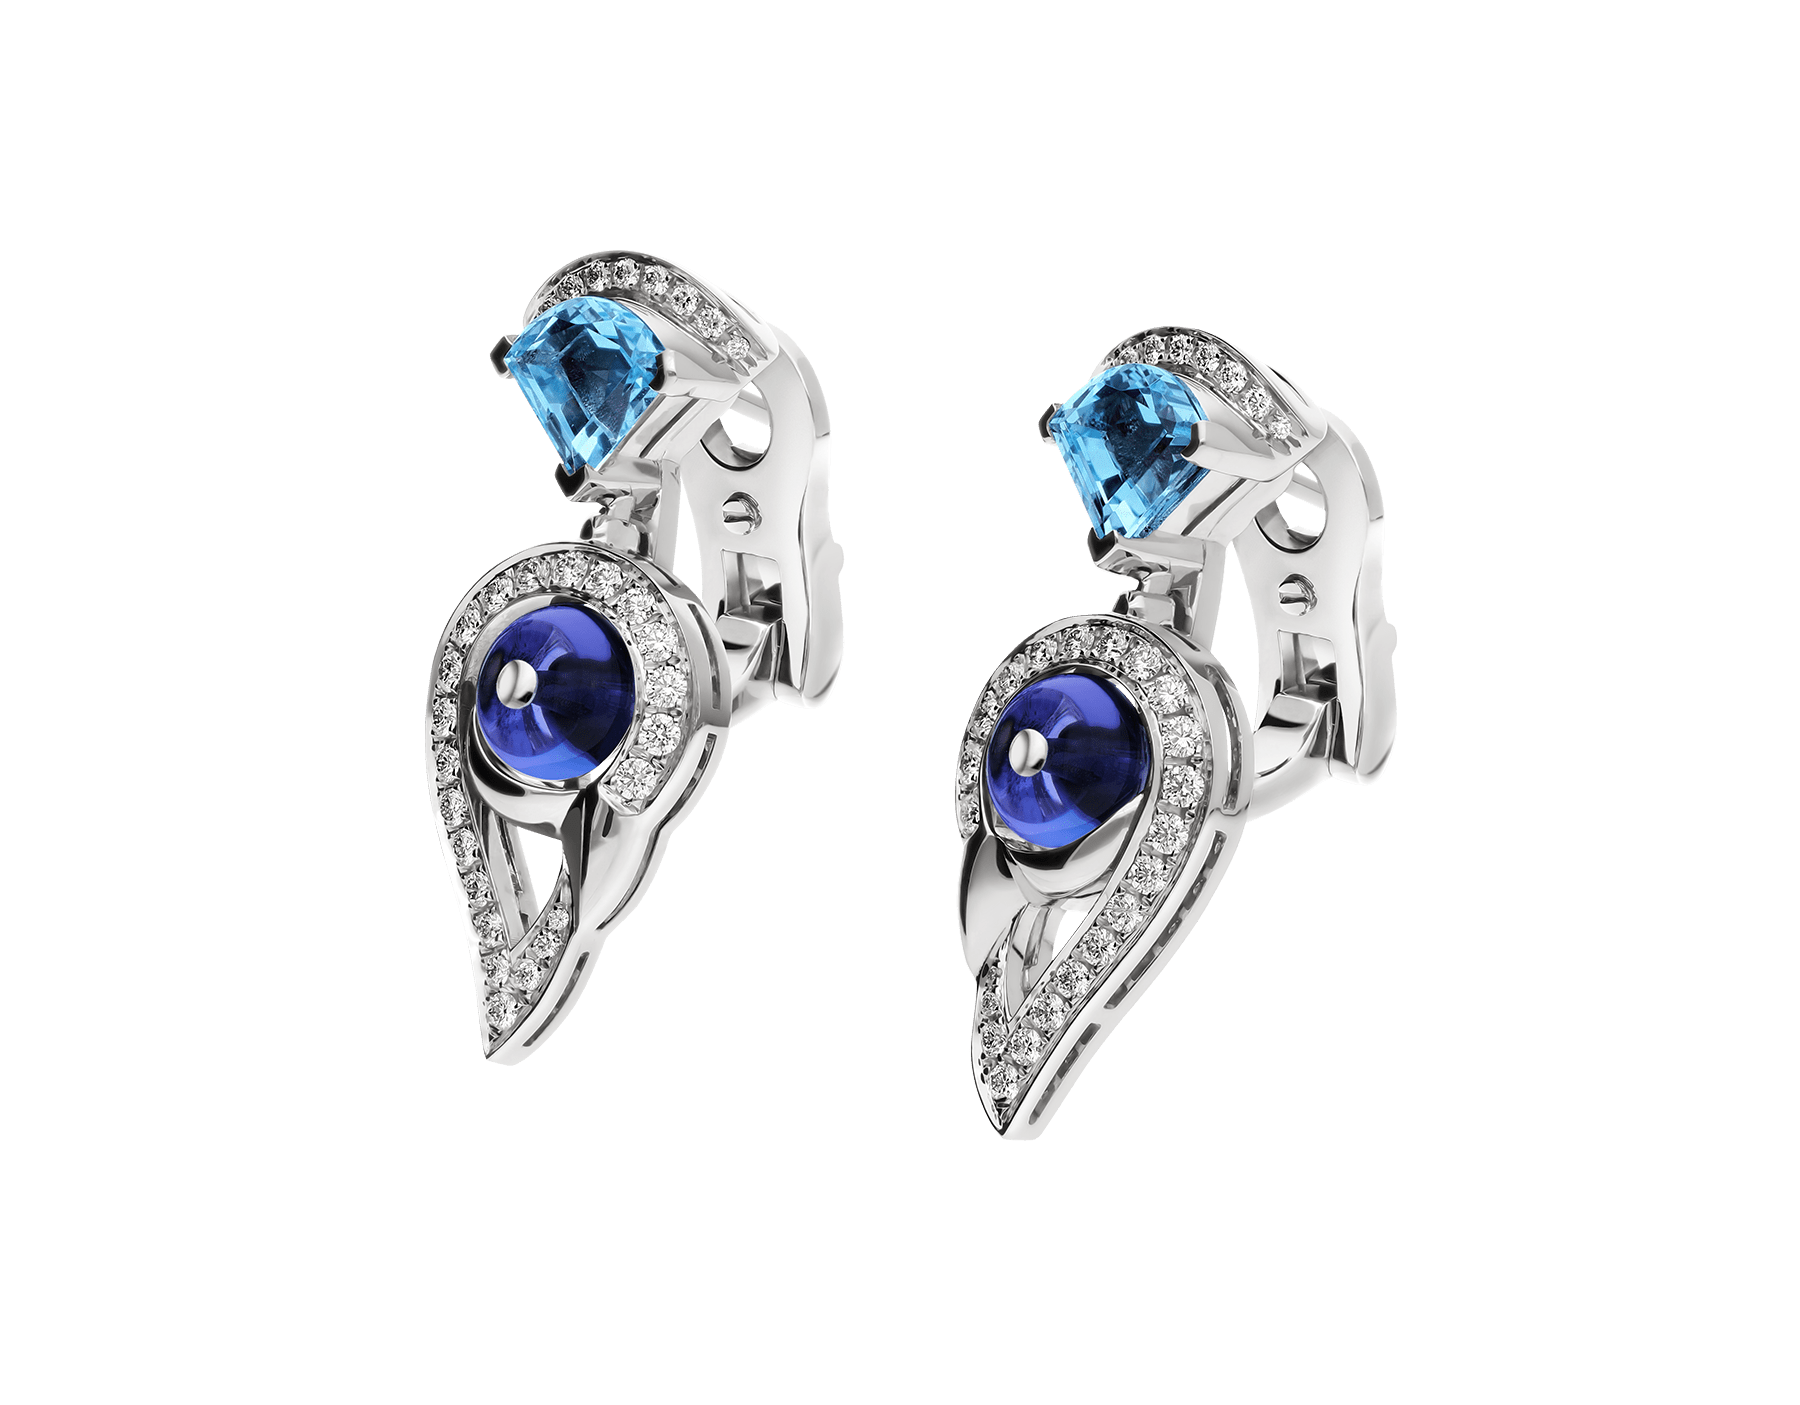 DIVAS' DREAM 18 kt white gold earrings set with coloured gemstones and pavé diamonds 355628 image 2